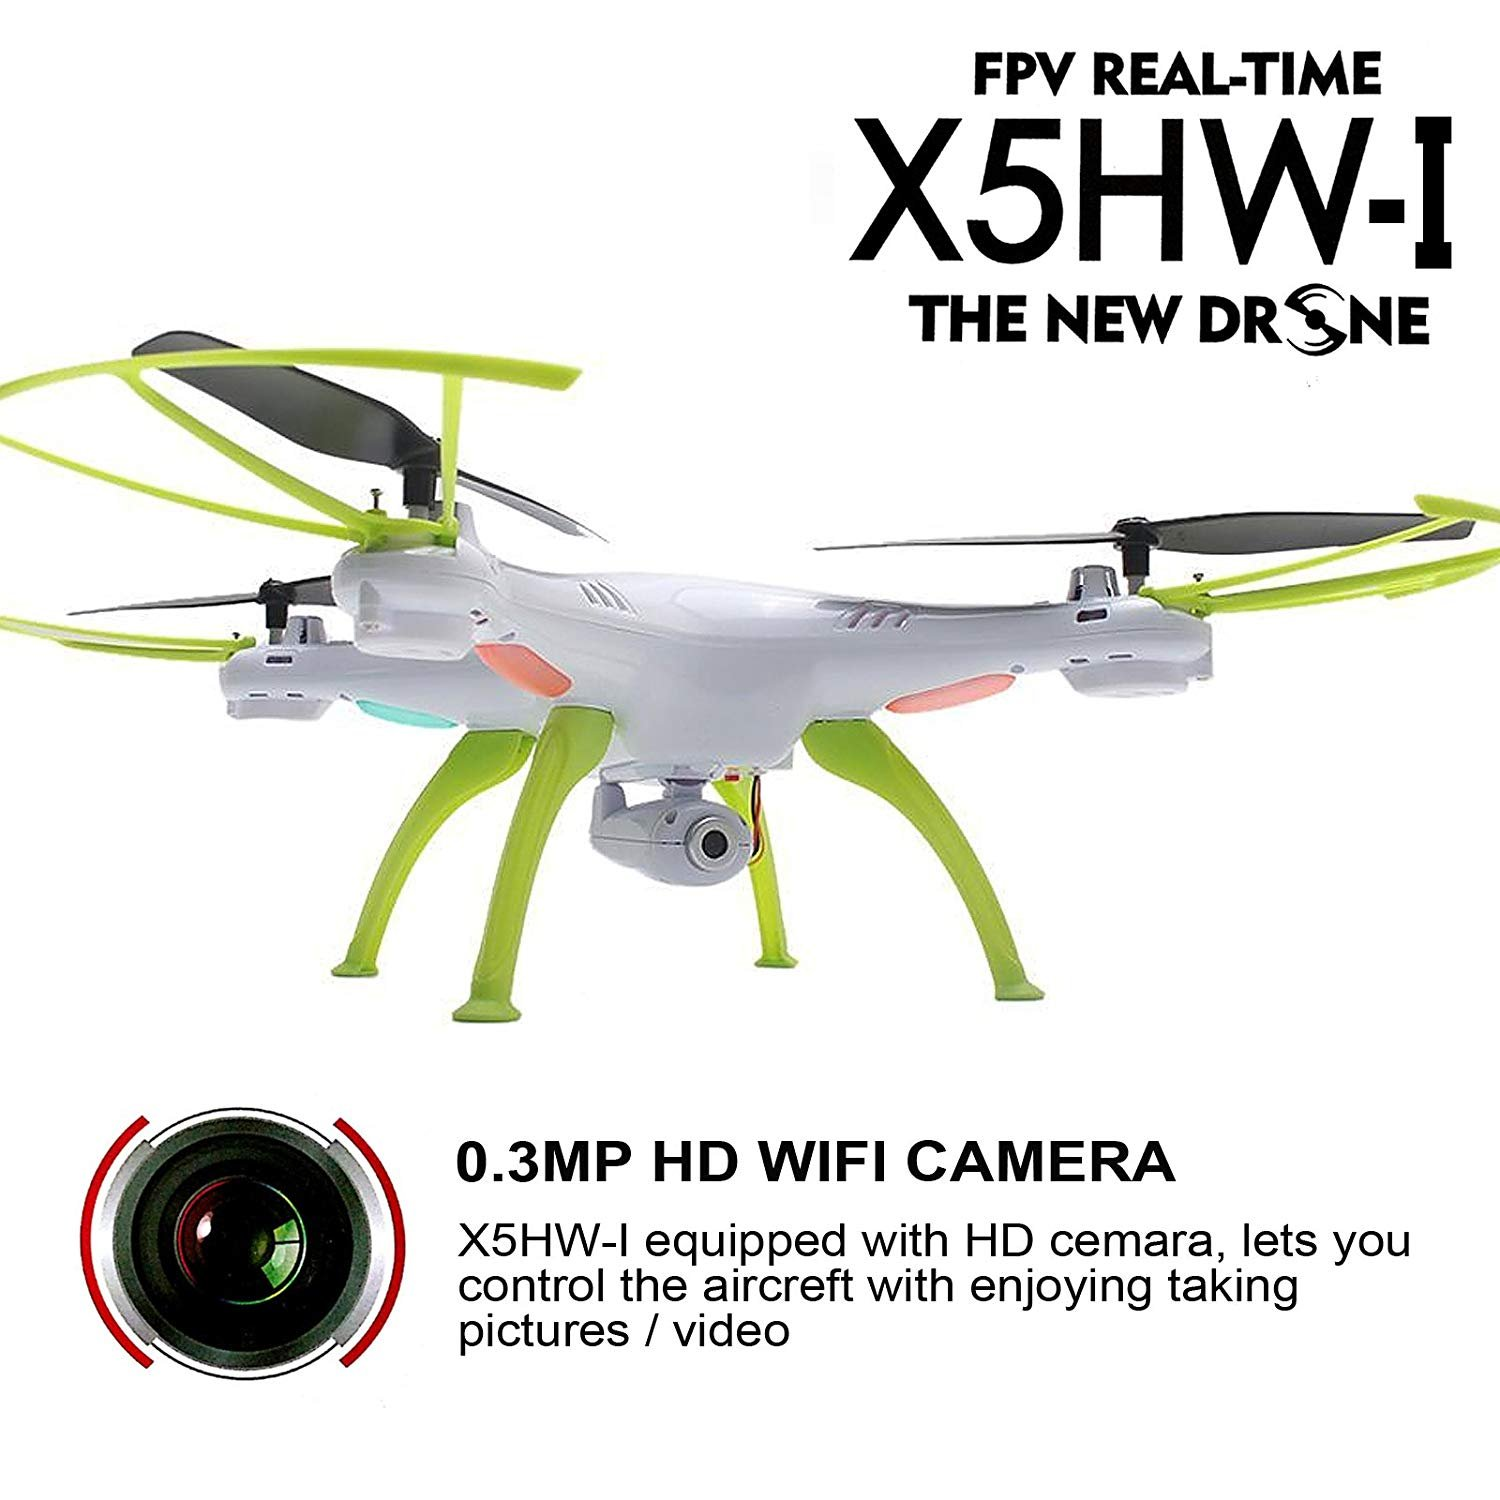 Amazon Cheerwing Syma X5hwi Wifi Fpv Drone With Hd Camera Live. Amazon Cheerwing Syma X5hwi Wifi Fpv Drone With Hd Camera Live Video Altitude Hold Function 24ghz 4ch Rc Quadcopter White Toys Games. Wiring. Drone Syma X5hw Wiring Diagram At Scoala.co